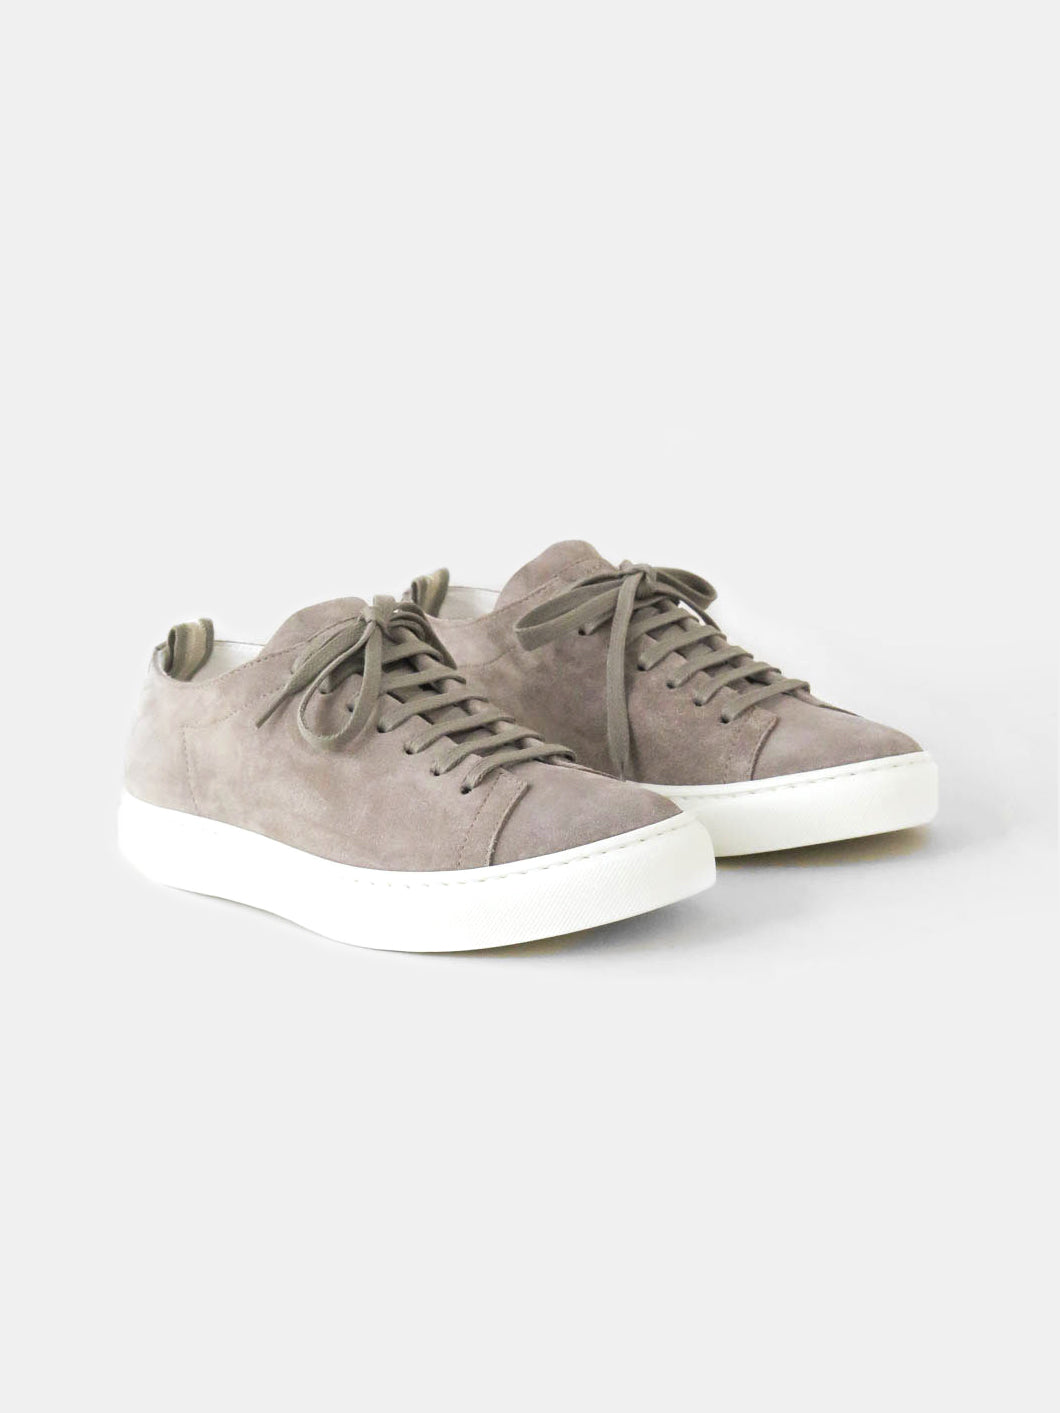 officine creative leggera sneaker in taupe grey